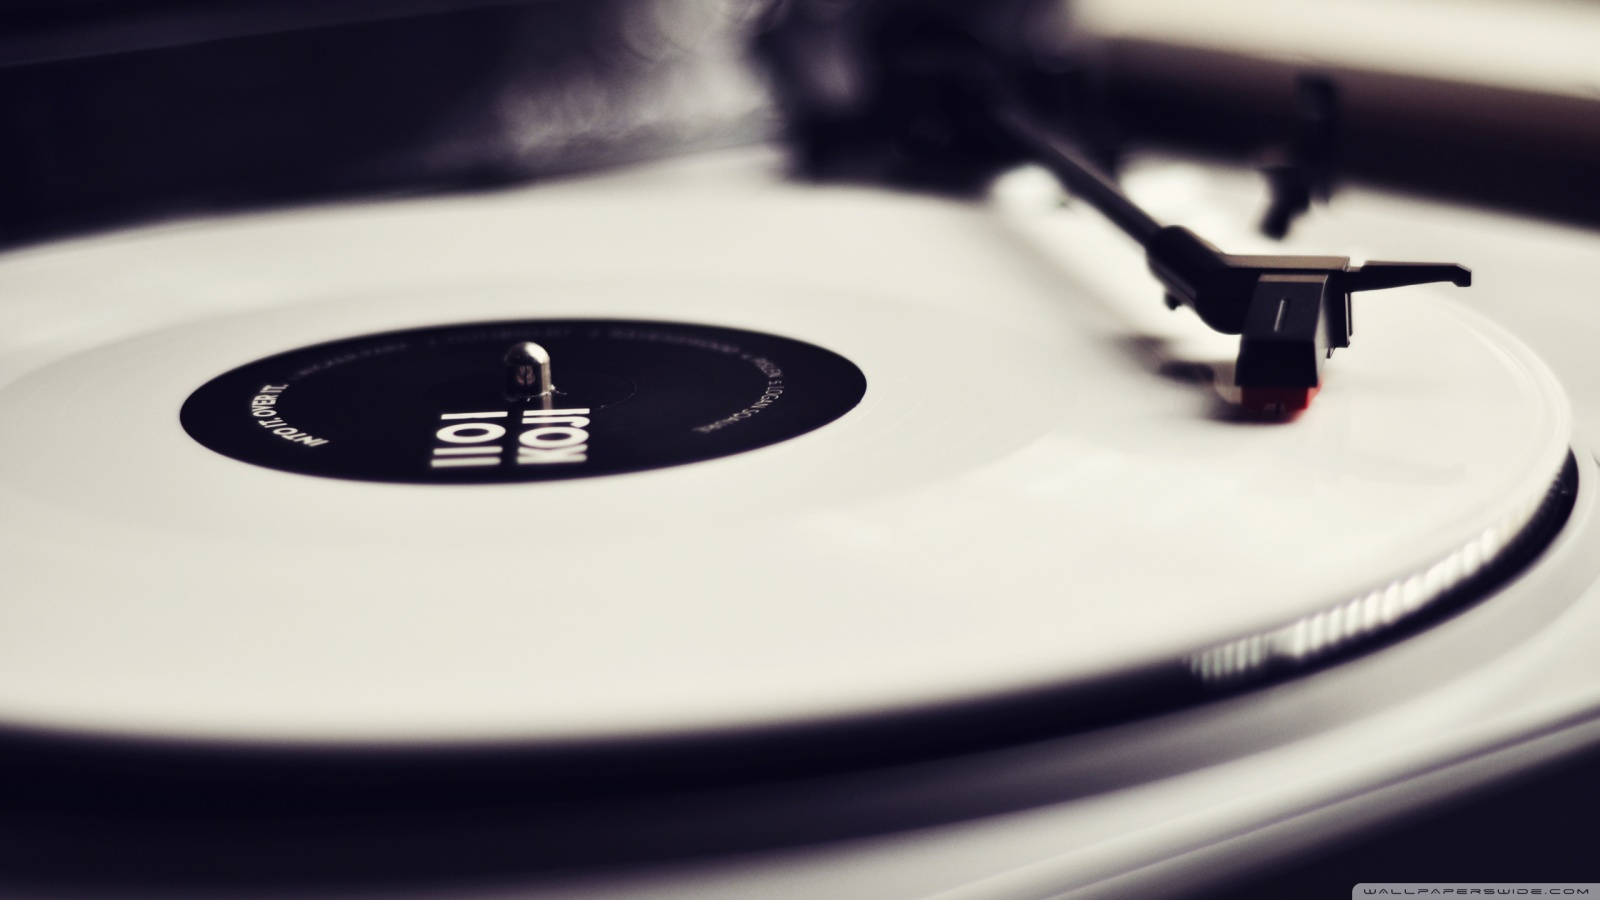 vinyl_record_player_black_and_white-wallpaper-1600x900